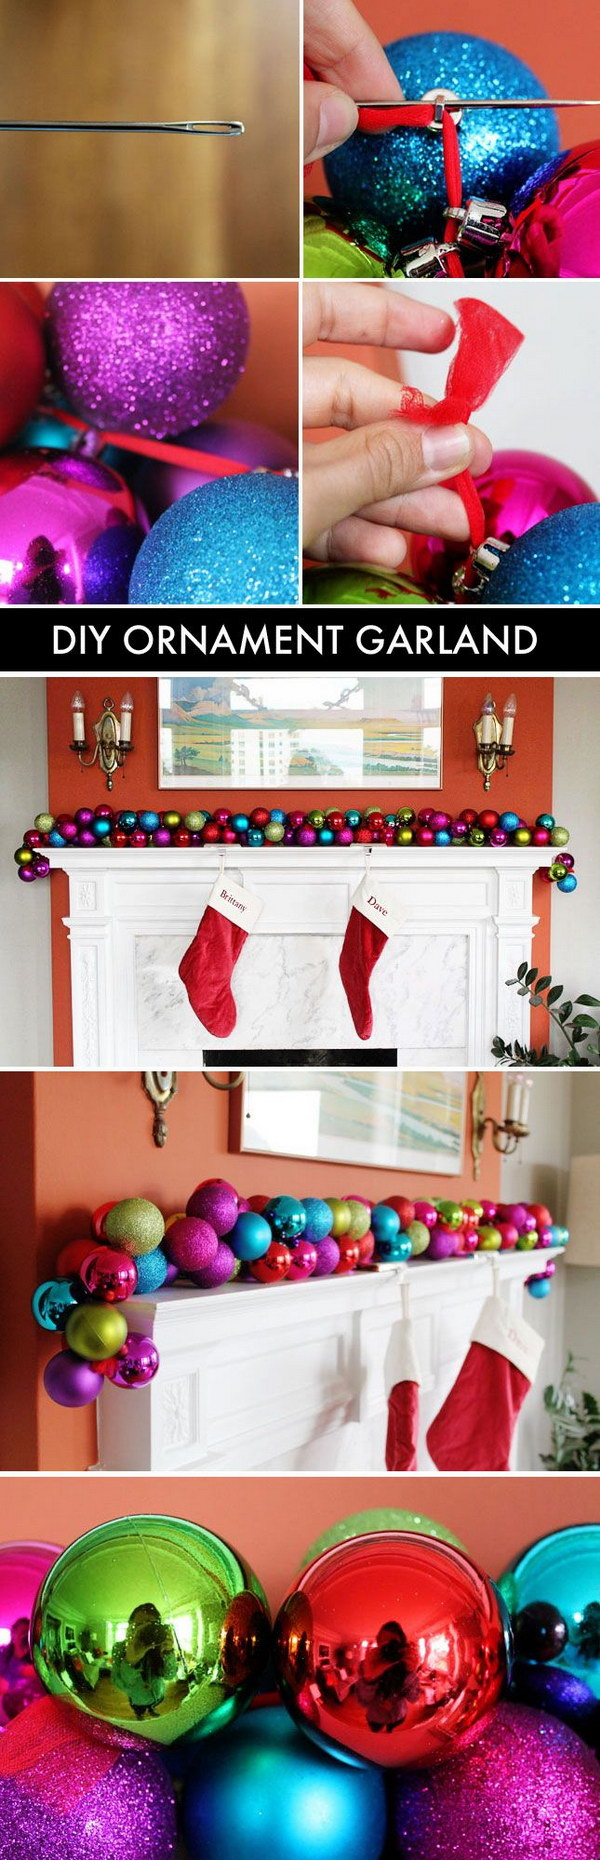 Awesome DIY Ornament Garland